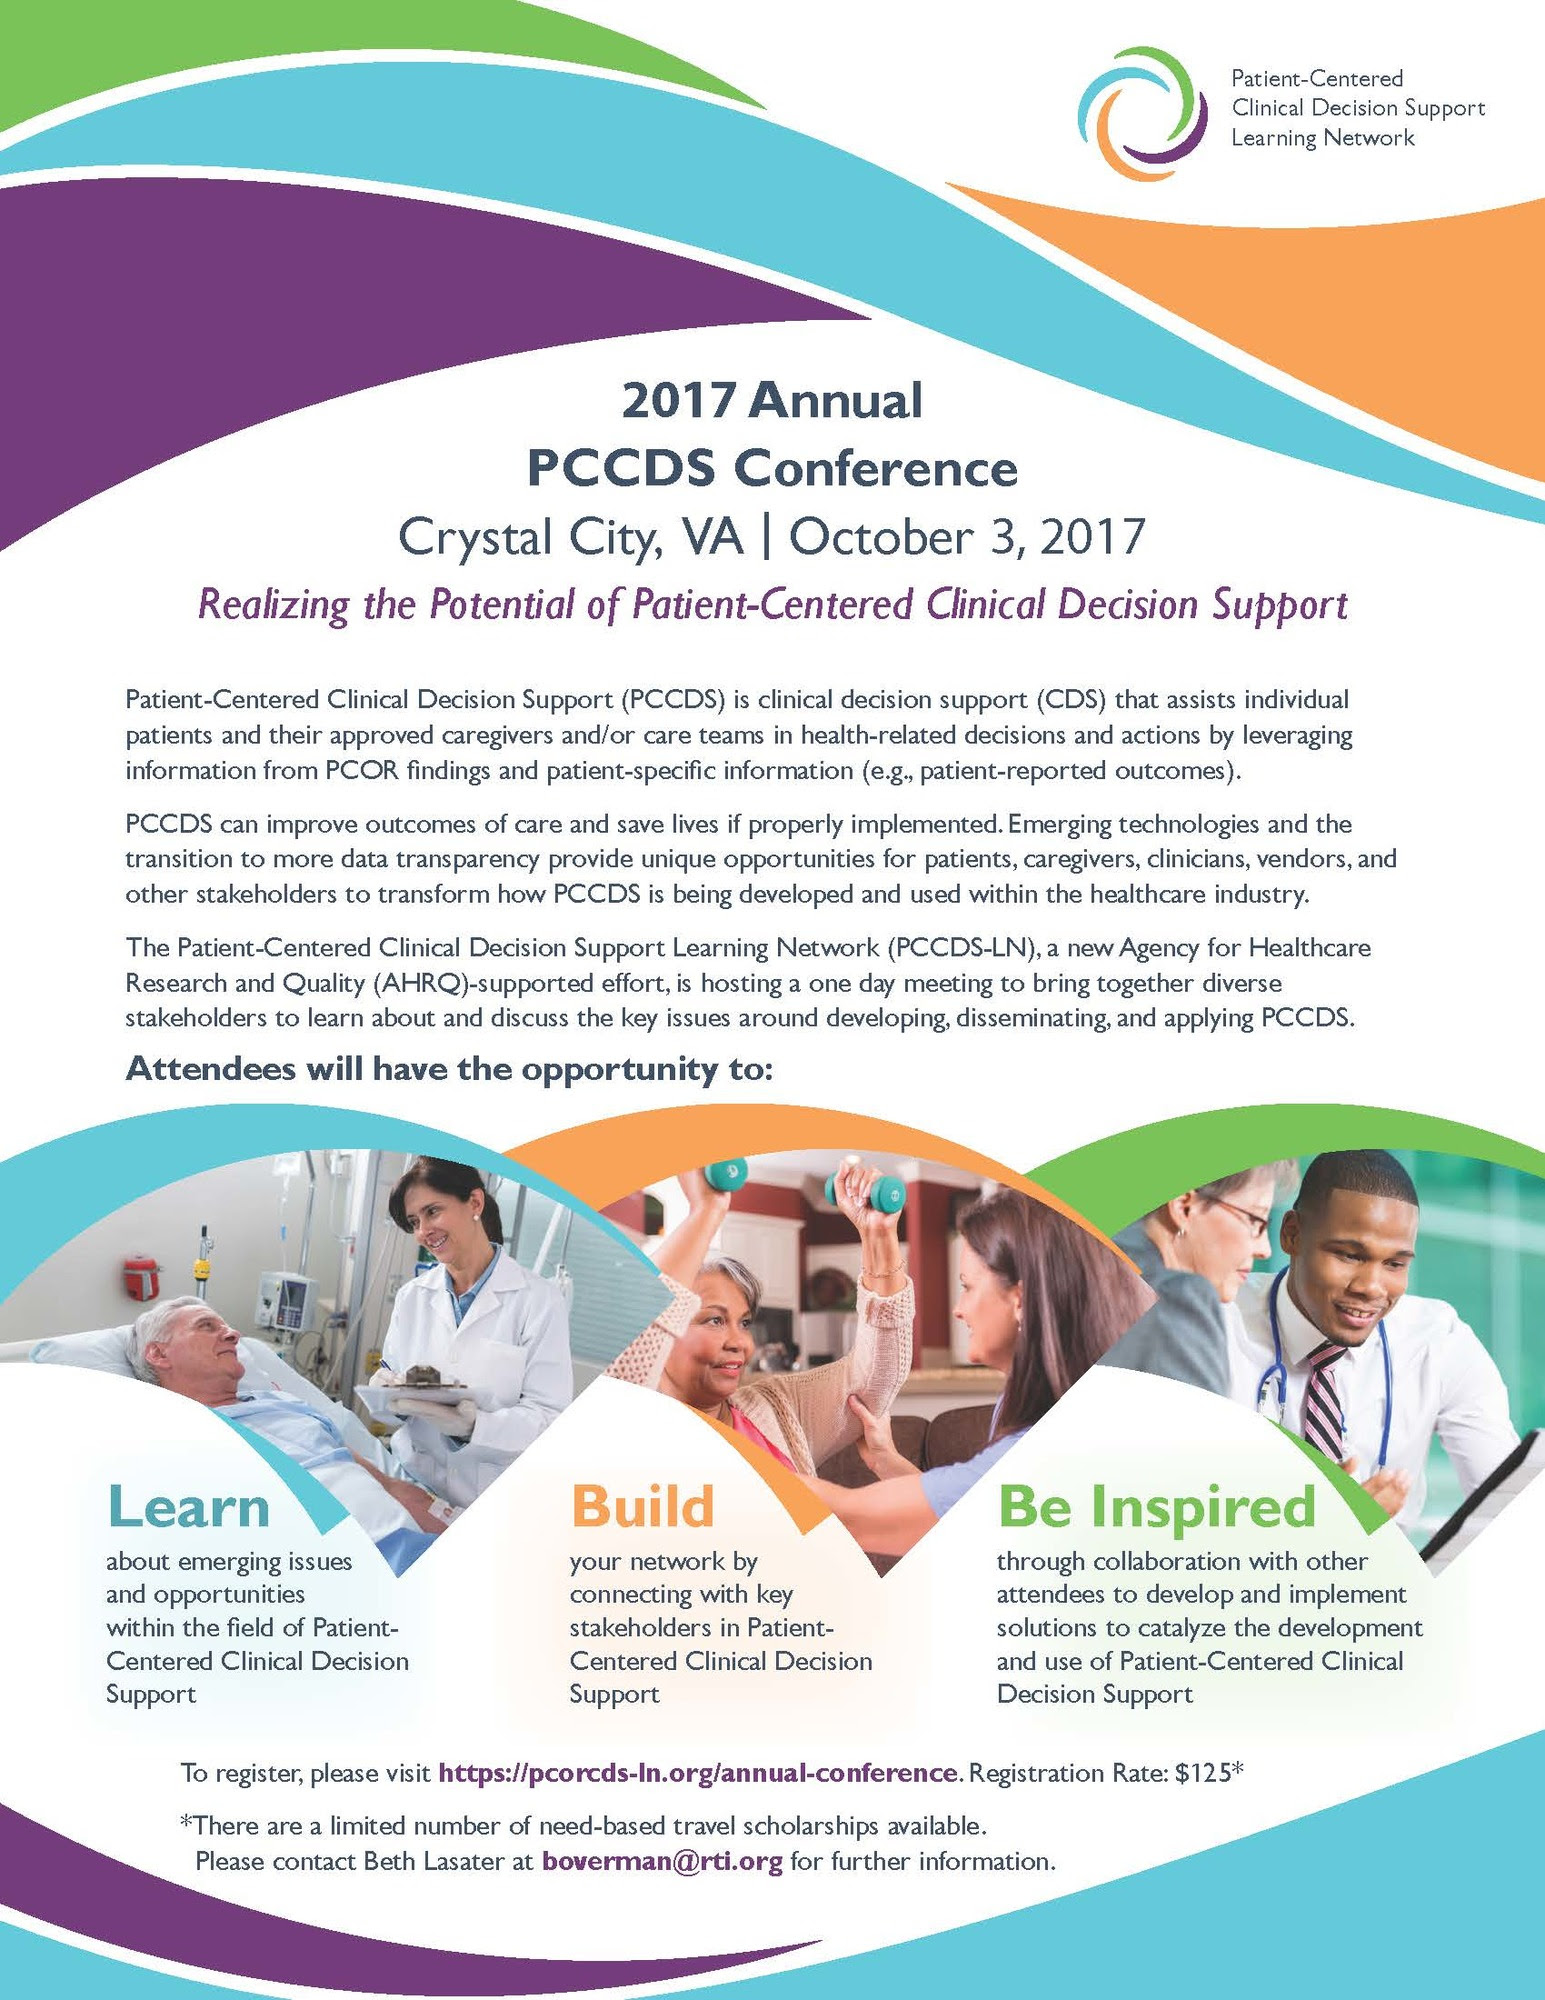 PCOR CDS Annual Conference Flier